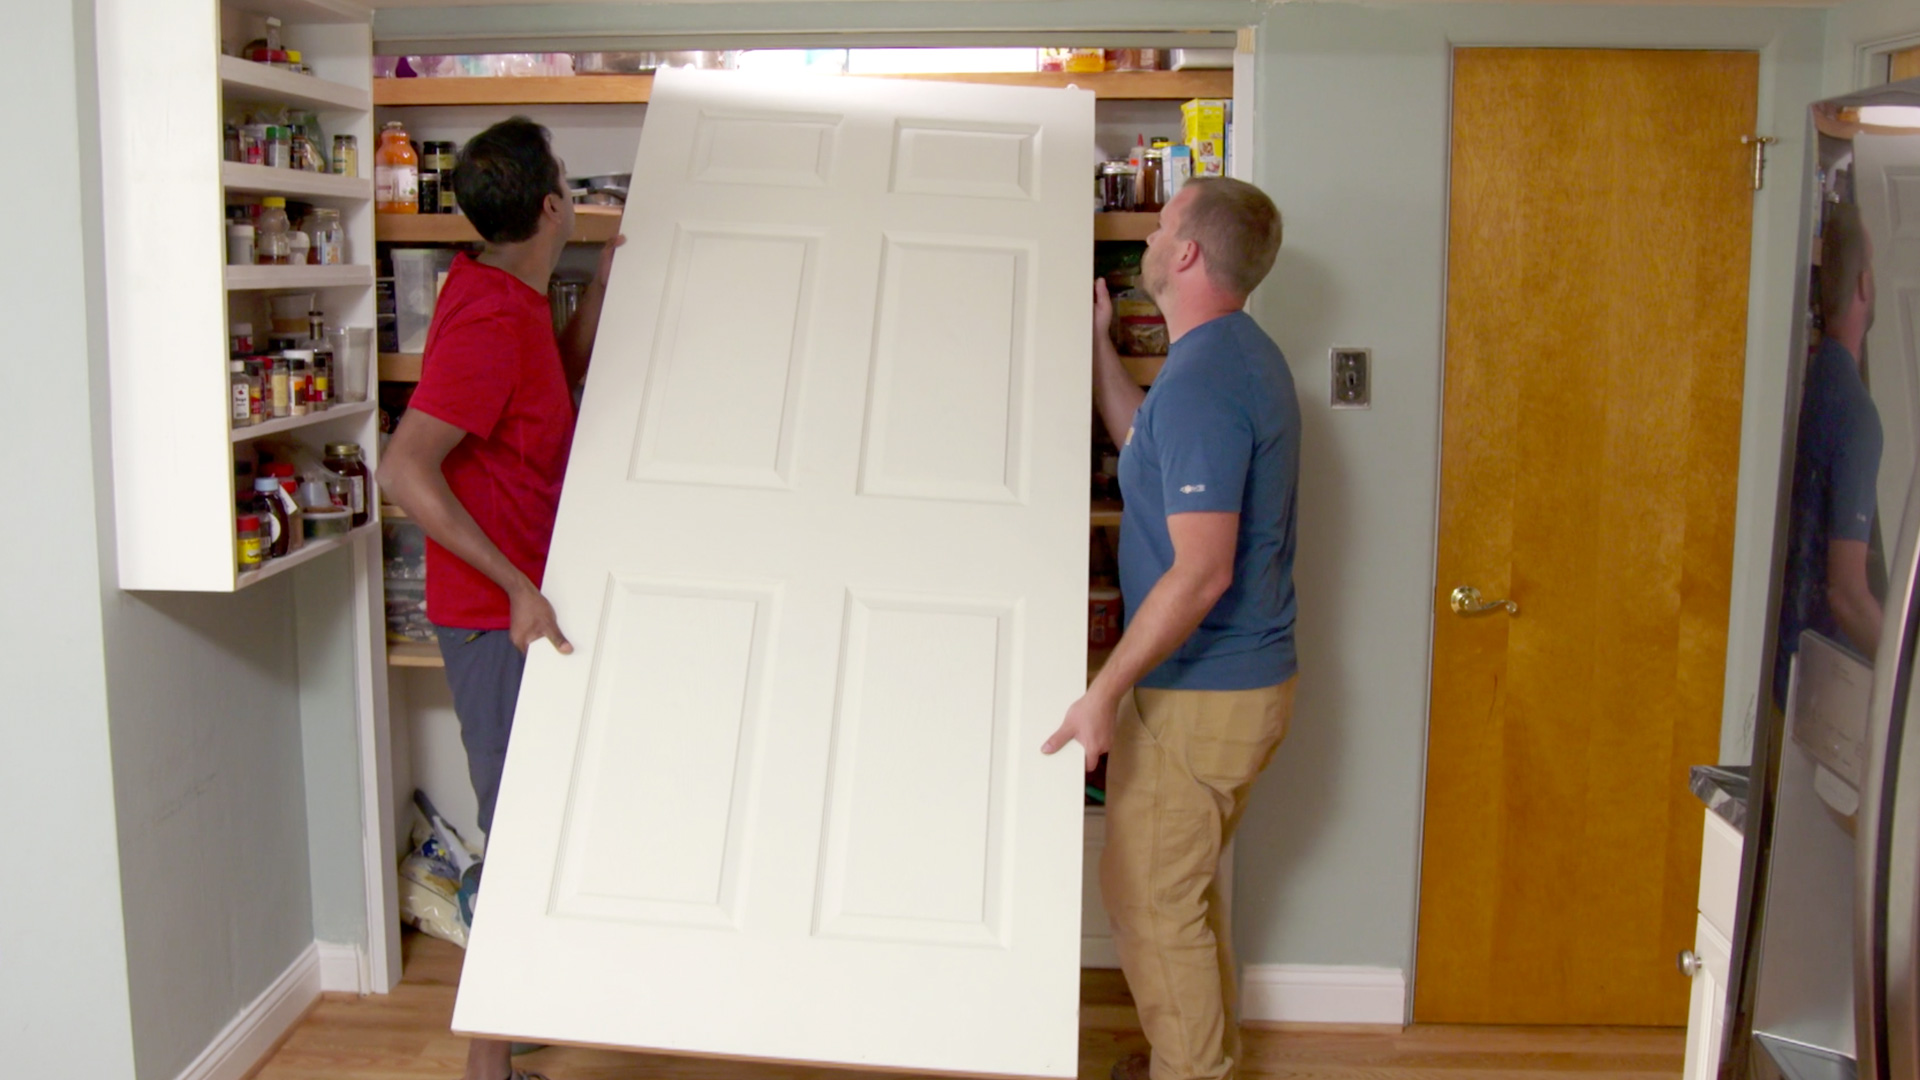 Installing bypass pantry doors.